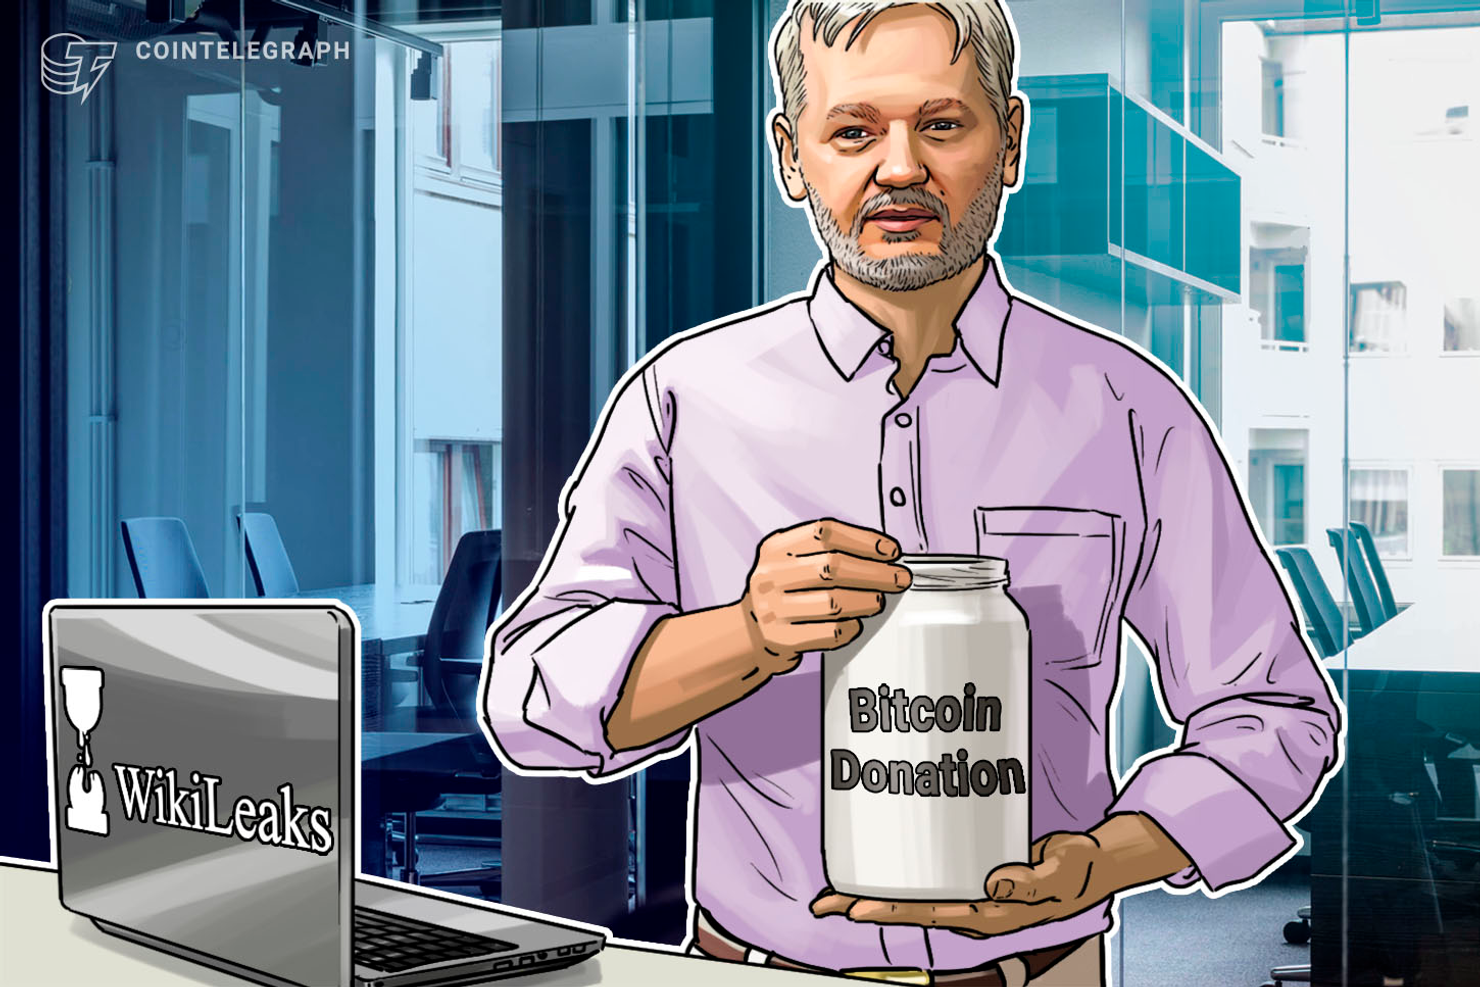 Kim Dotcom Donates K.im Bitcoin Fees to Julian Assange Ahead of $8M IEO